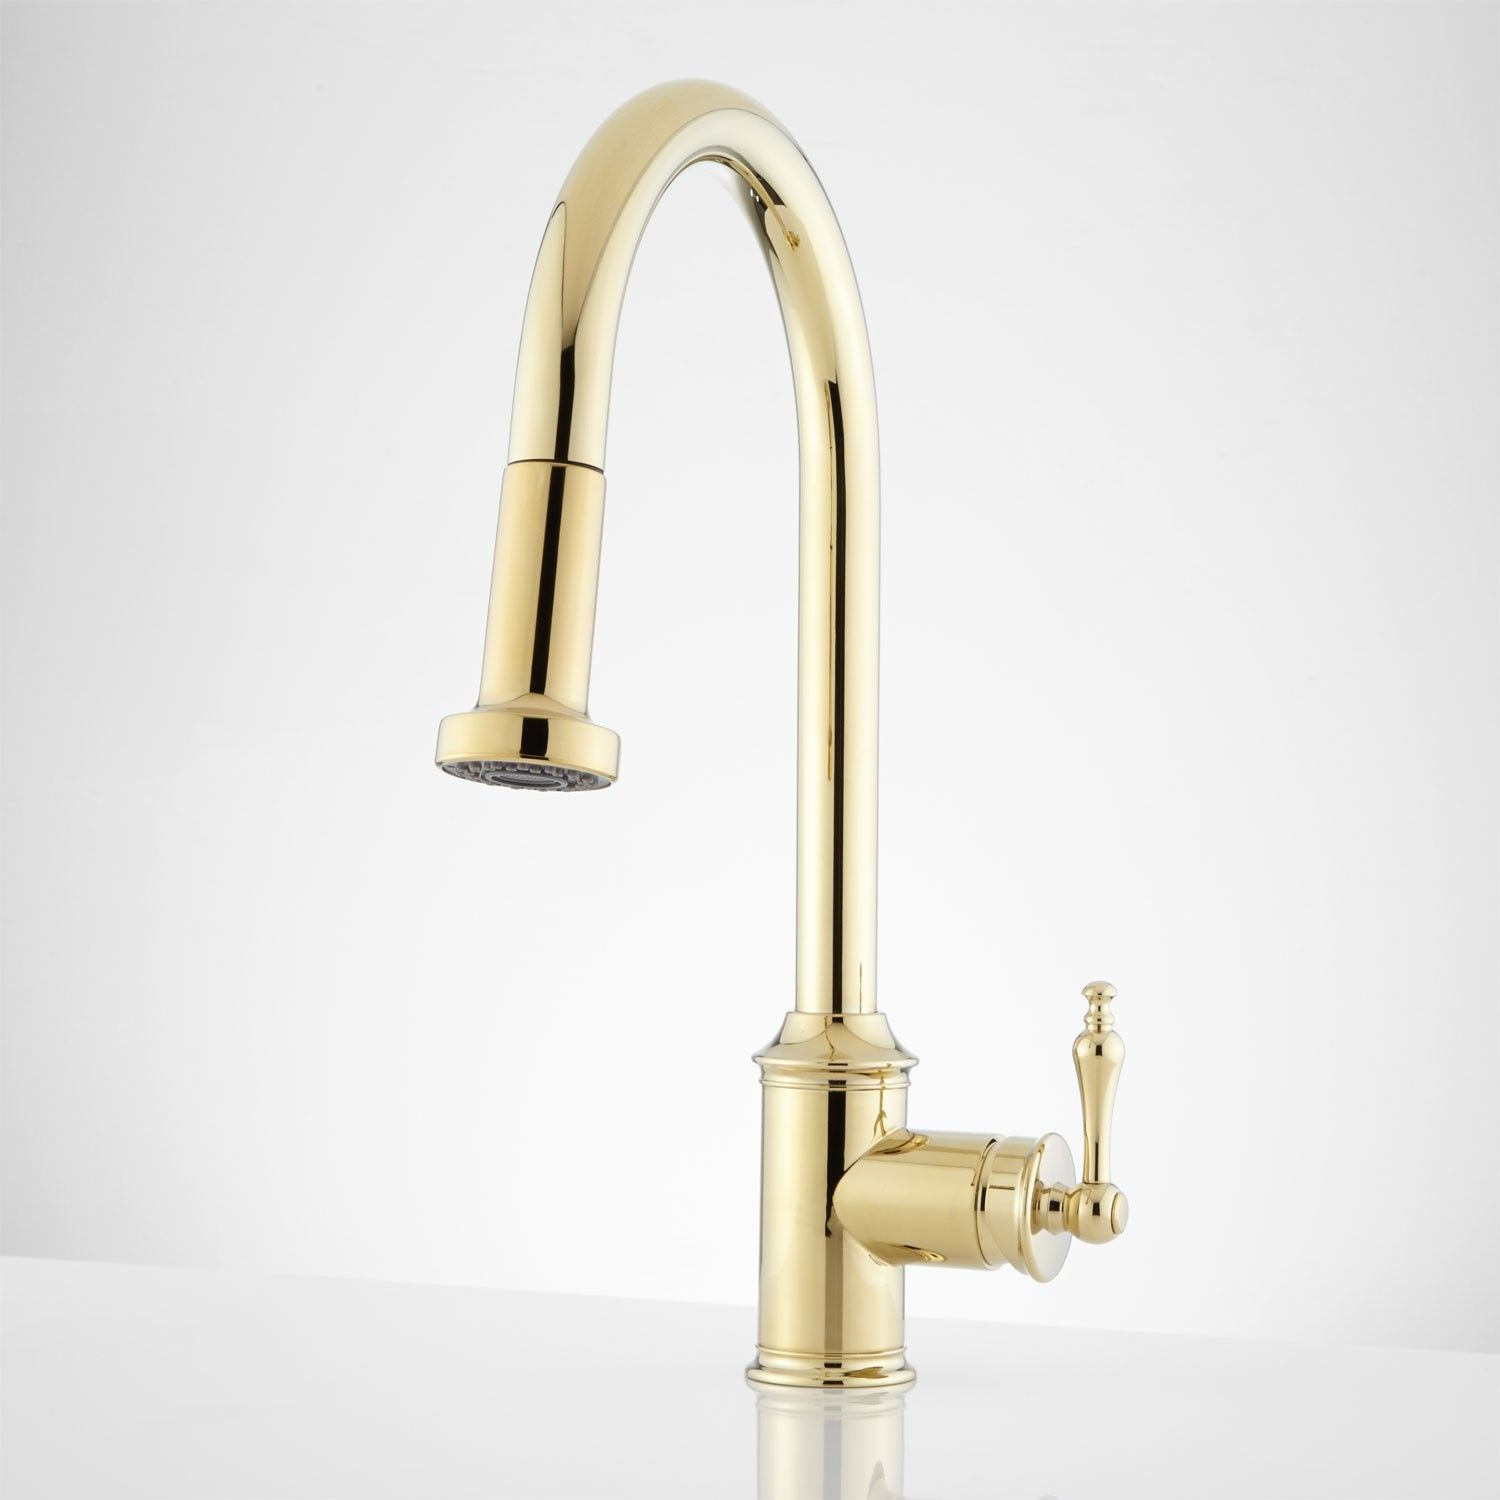 how makes kitchen that faucets faucet is big a new install and upgrade installing quick to difference easy